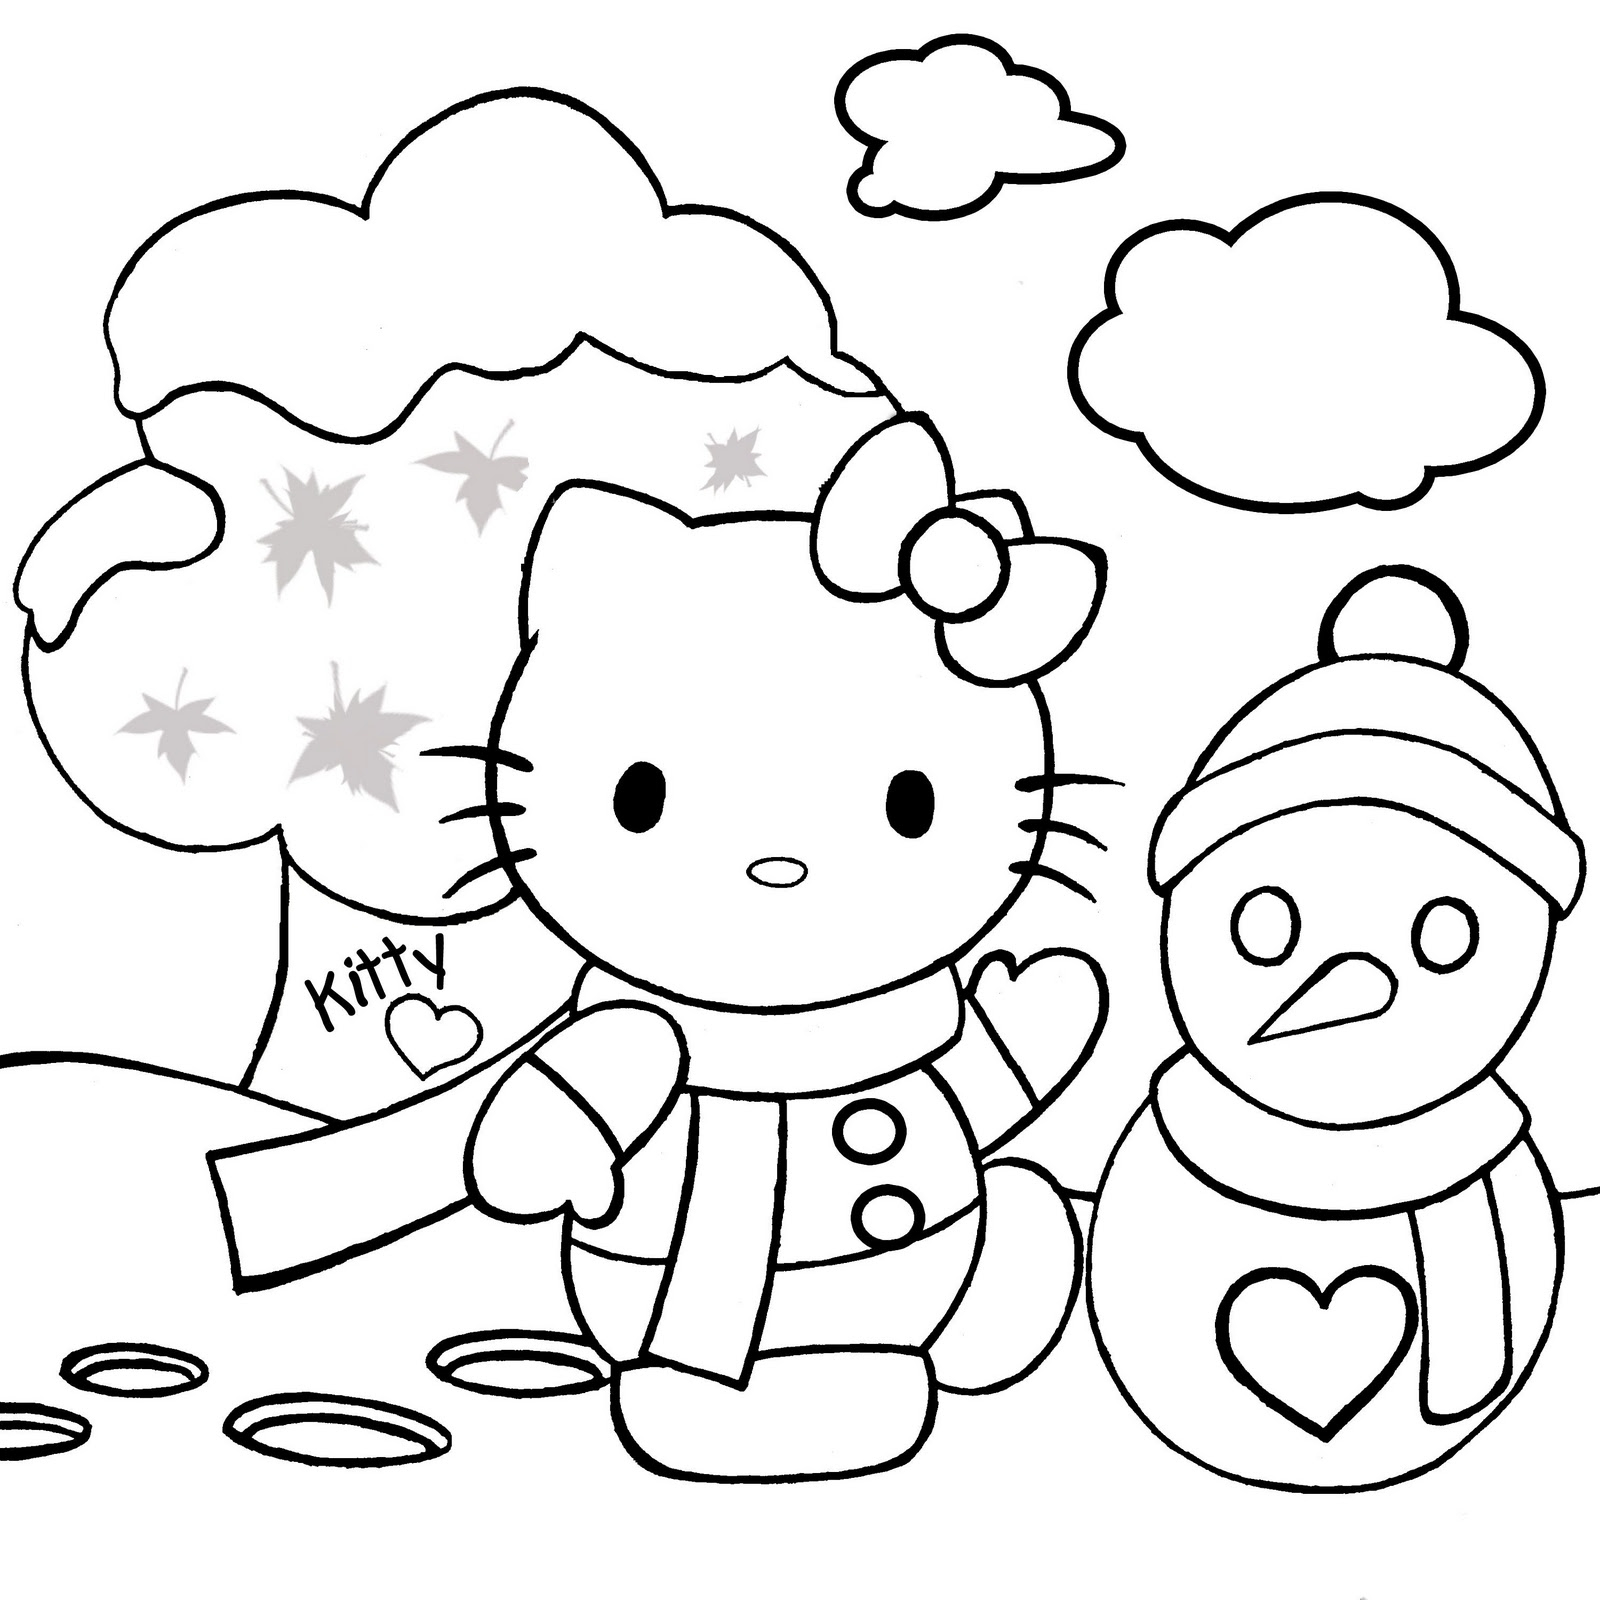 Best Hello Kitty Mini Coloring Pages Fresh Hello Kitty Coloring Collection Of Proven Coloring Pages to Print Hello Kitty 2895 Unknown Printable